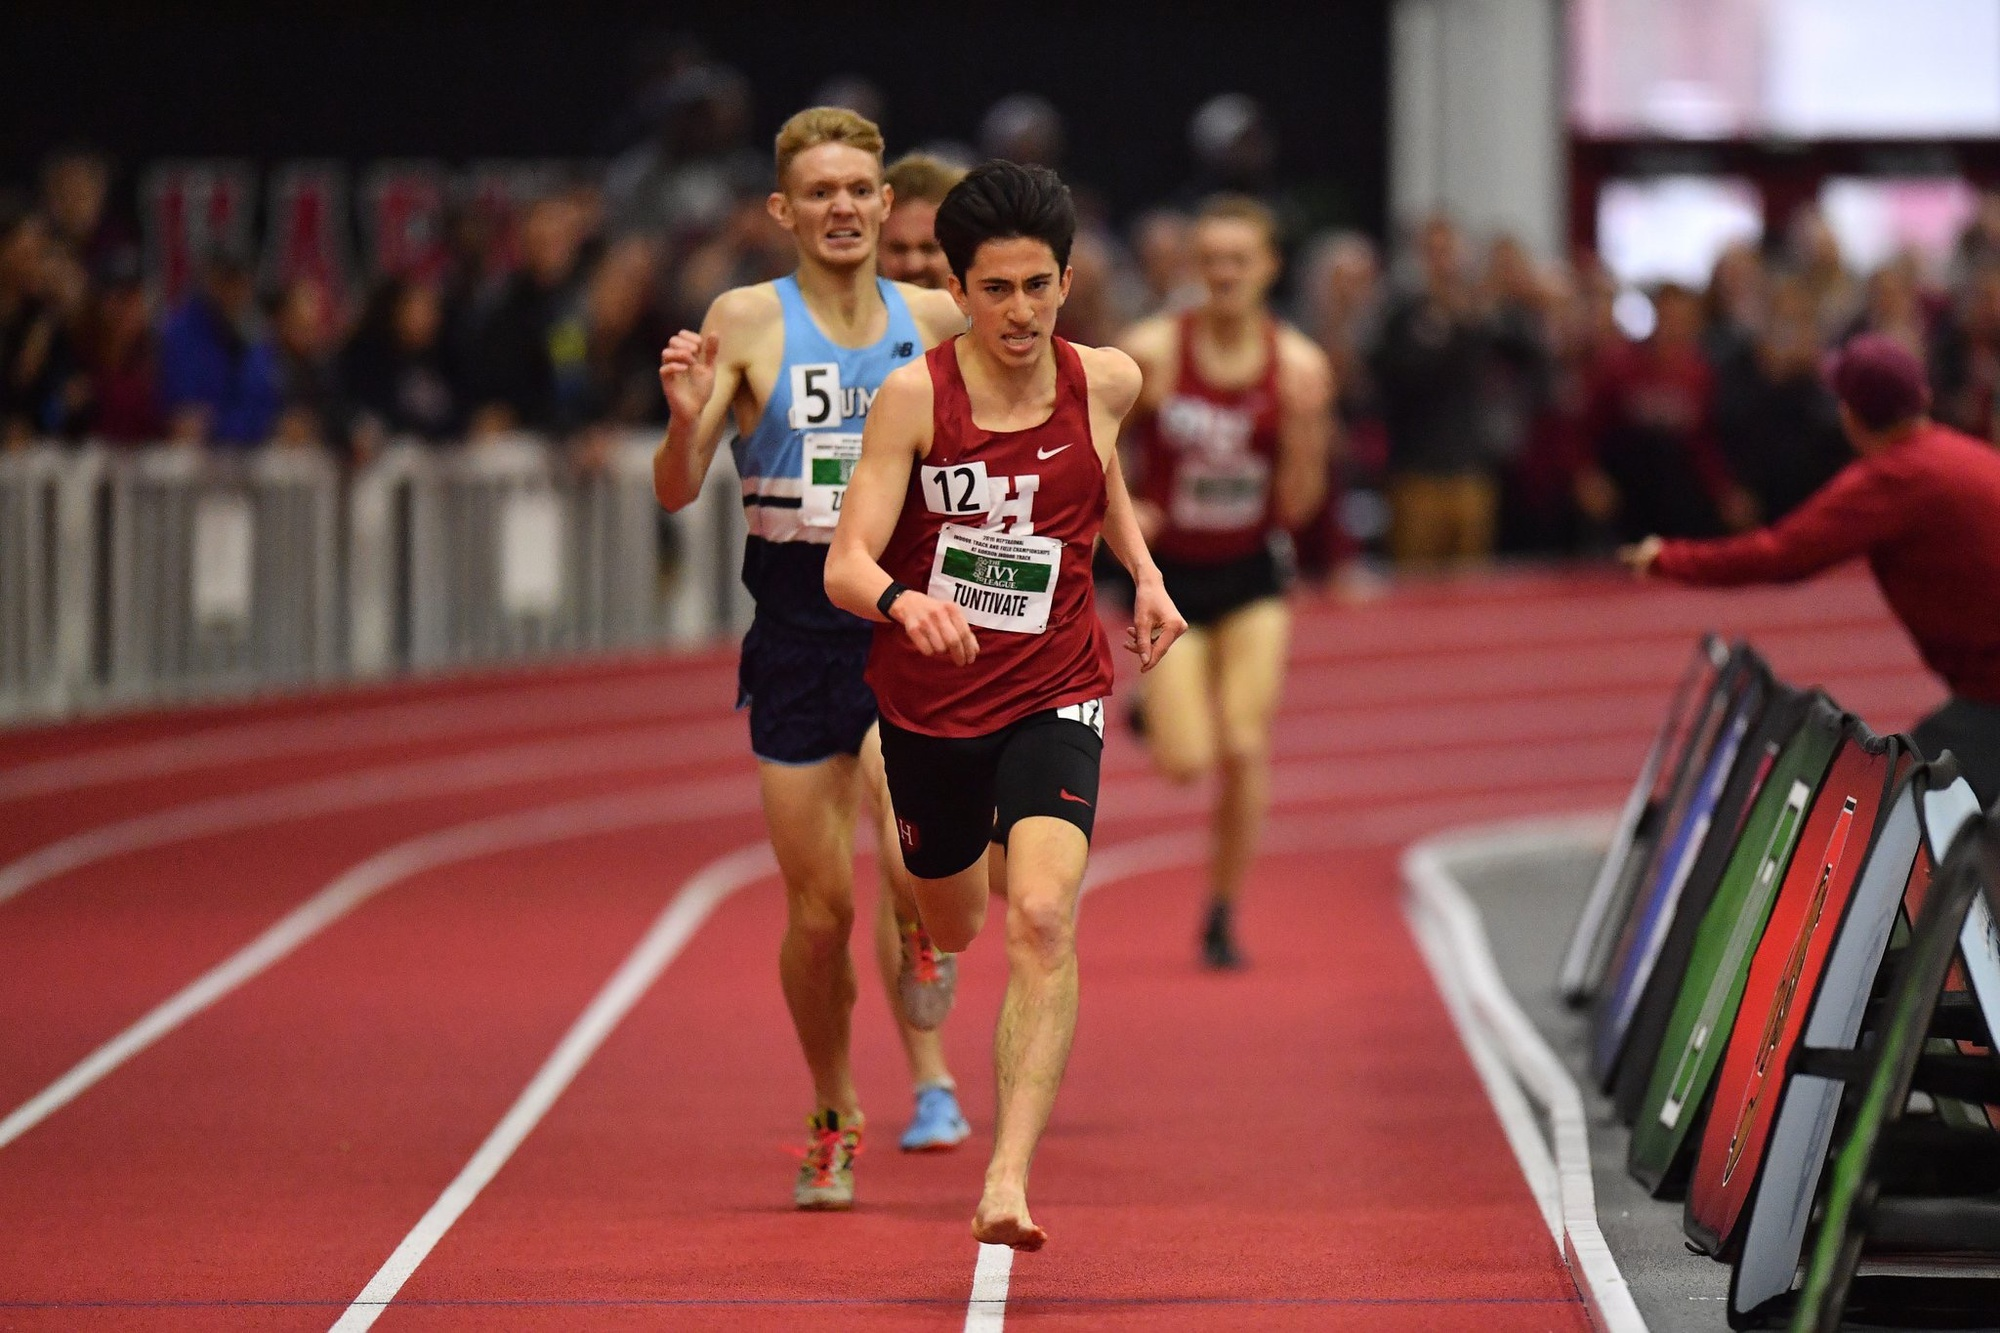 Senior Kieran Tuntivate emerged victorious in both the 3K and 5K races. The 3K win was achieved with one shoe for much of the race.